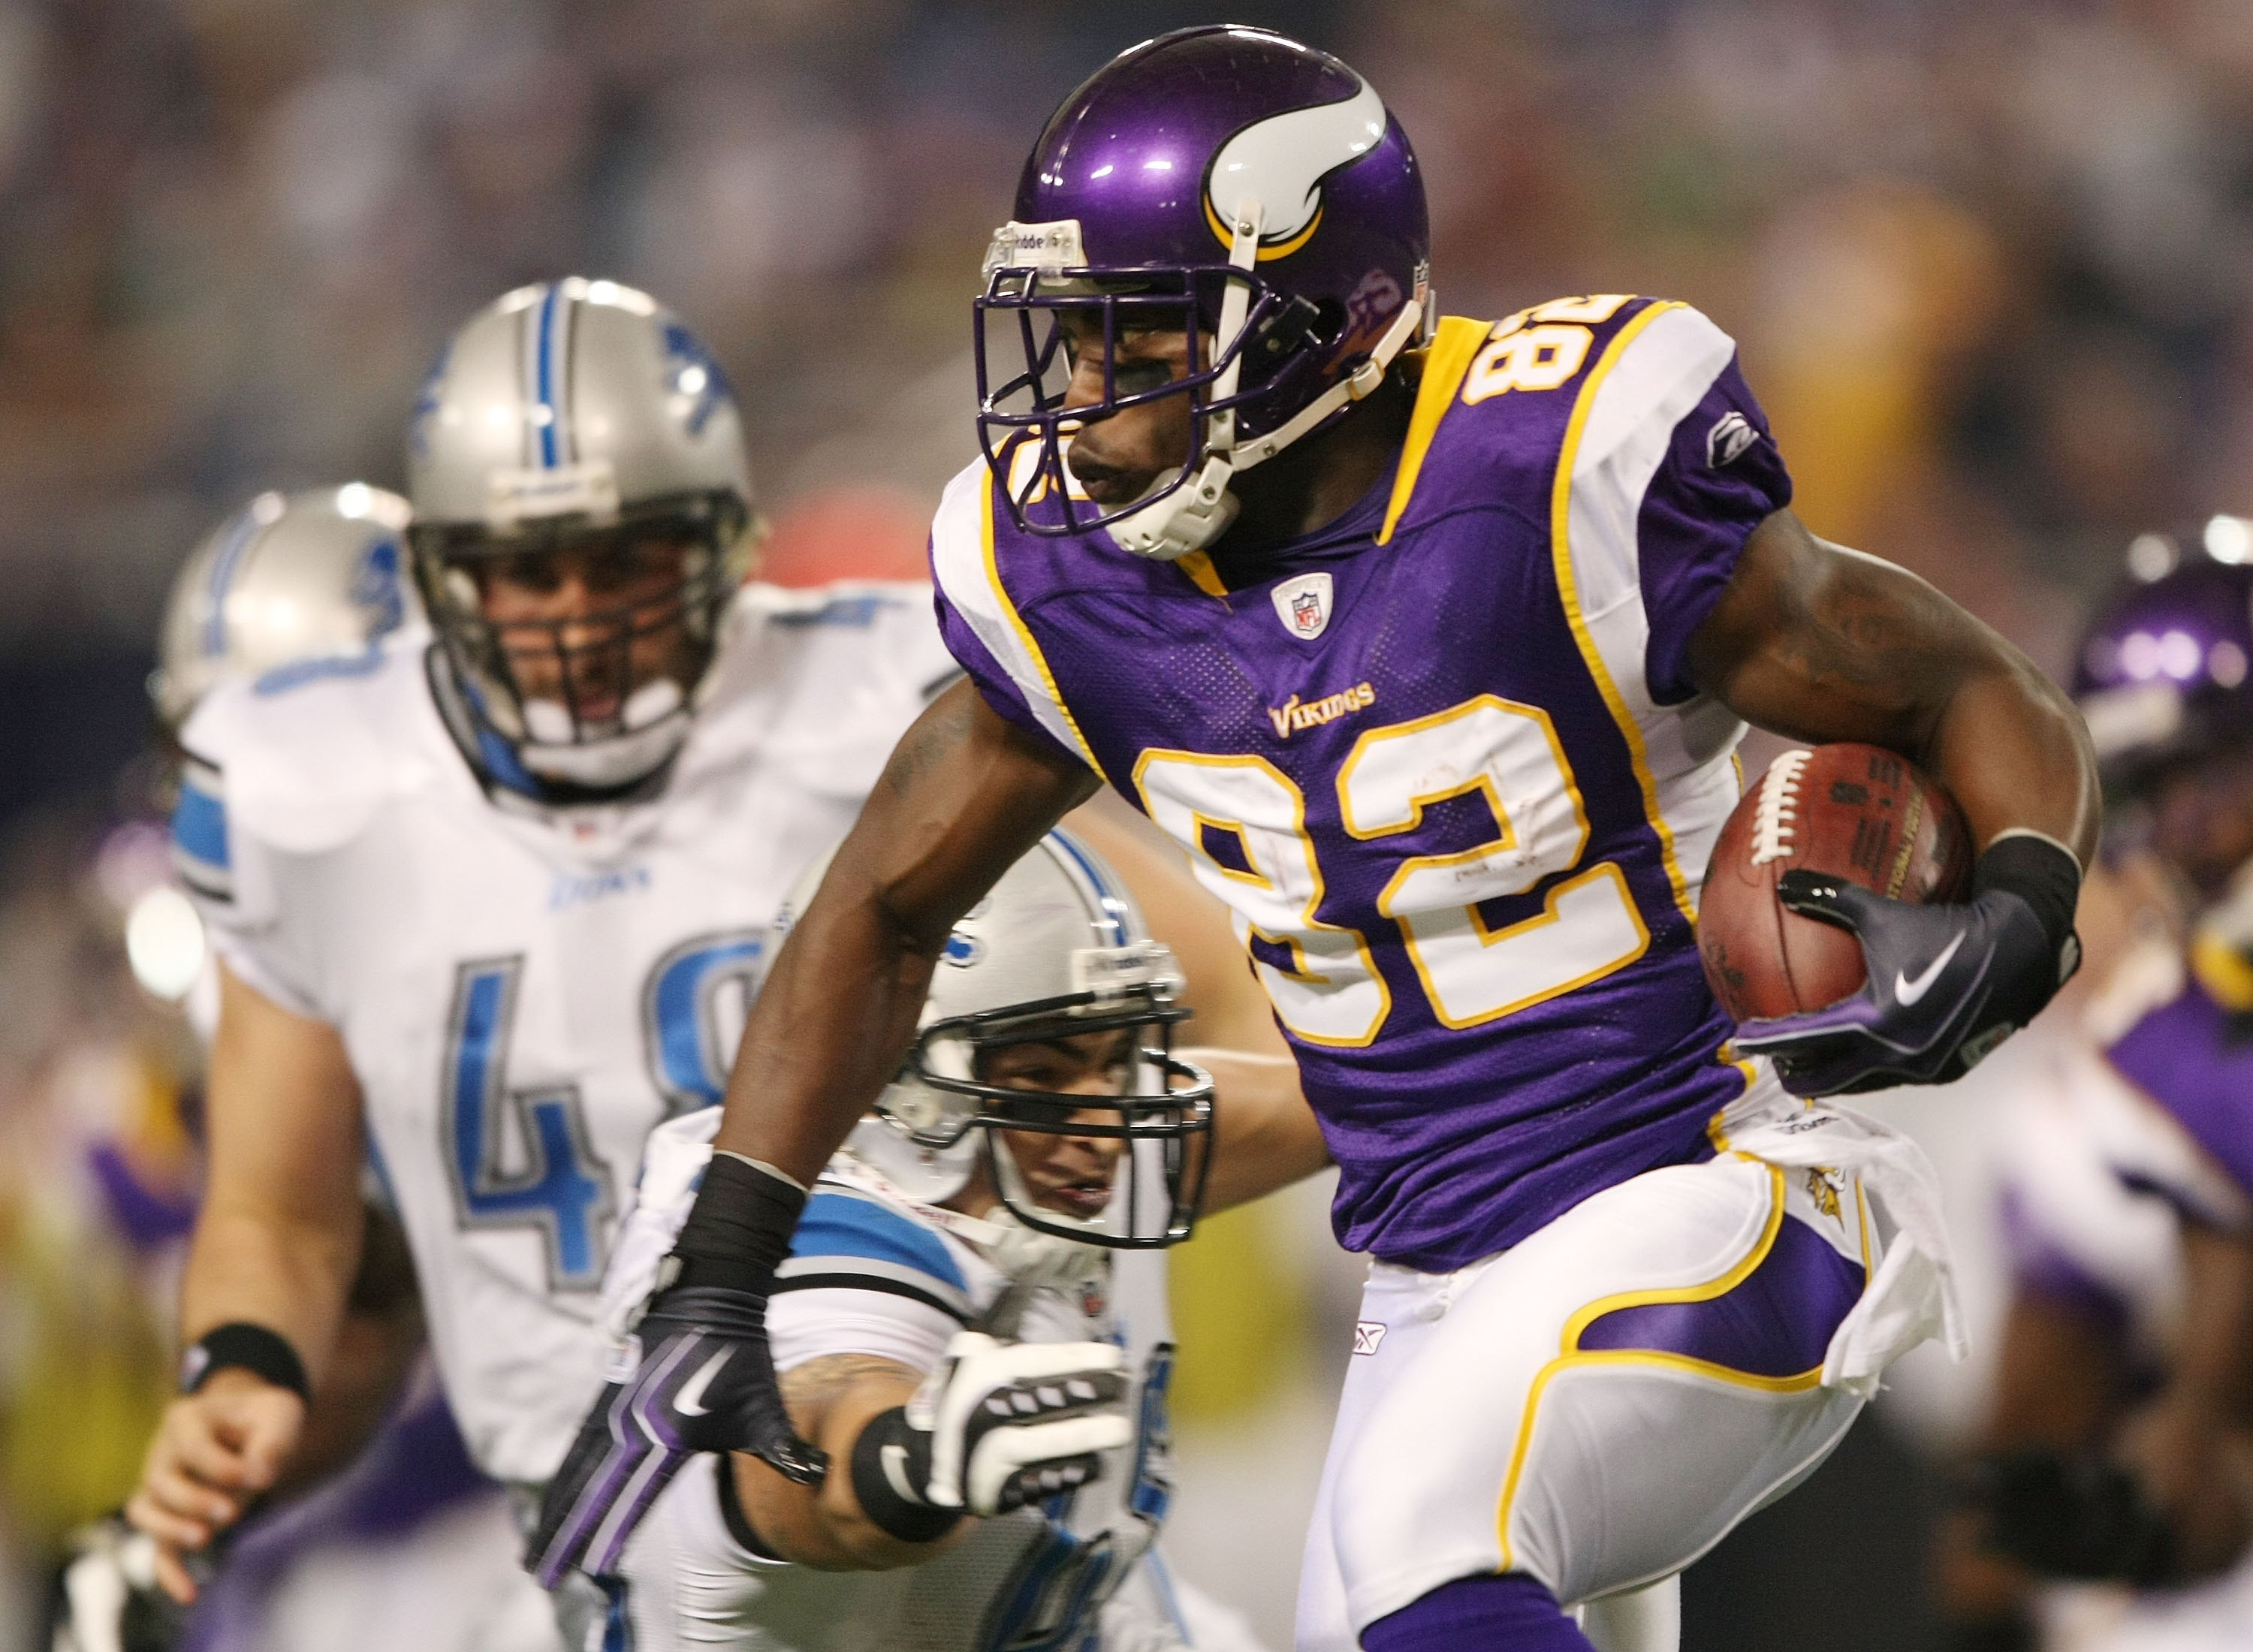 MINNEAPOLIS - NOVEMBER 15: Darius Reynaud #82 of the Minnesota Vikings carries the ball against the Detroit Lions on November 15, 2009 at Hubert H. Humphrey Metrodome.  (Photo by Elsa/Getty Images)